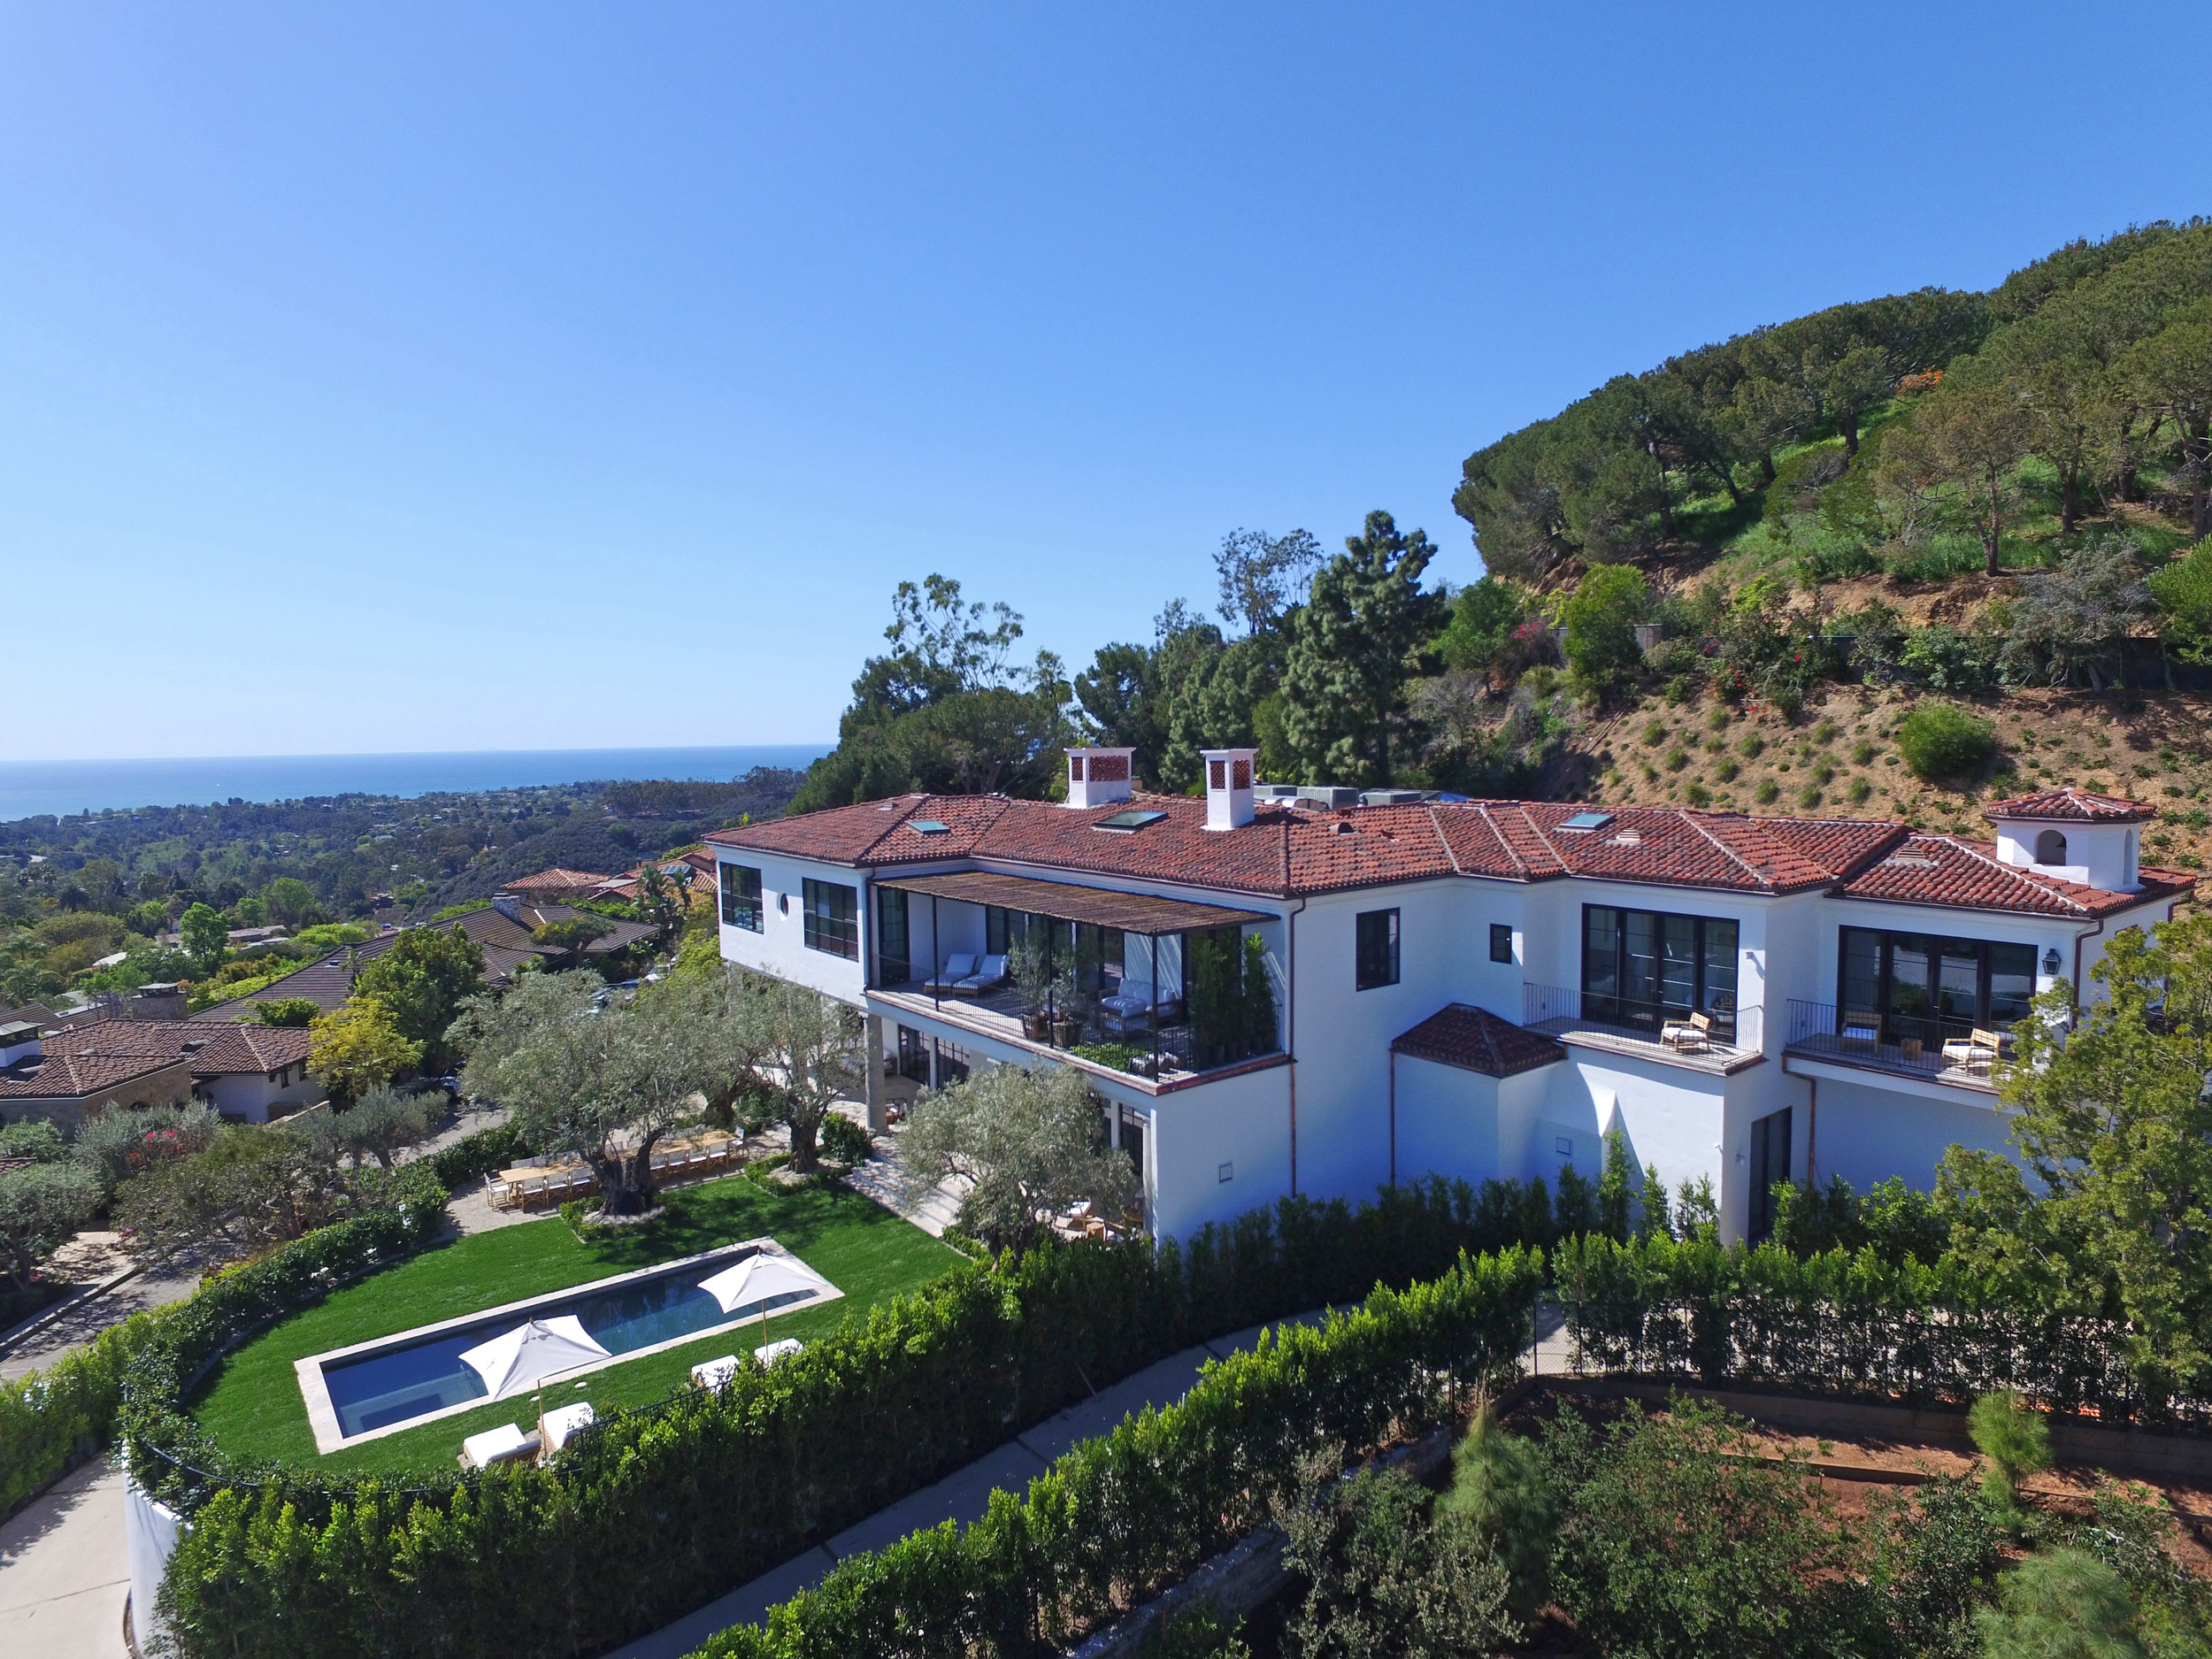 The former Ronald Reagan estate reimagined as The Riviera White House by Jaman Properties